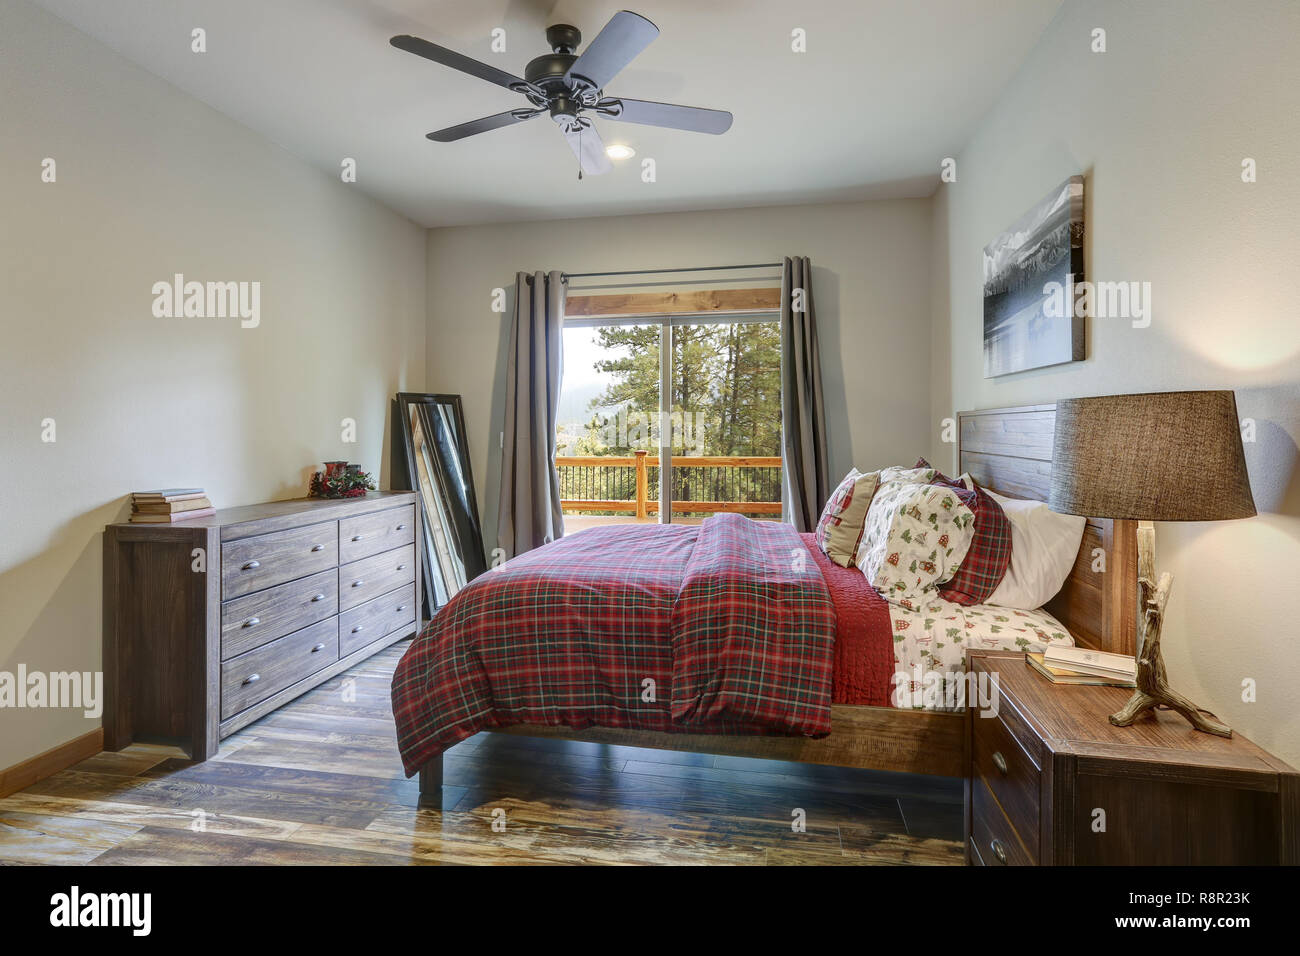 Restful Country Bedroom Furnished With Wooden Master Bed Dark Gray Dresser And View Of Spacious Deck Stock Photo Alamy